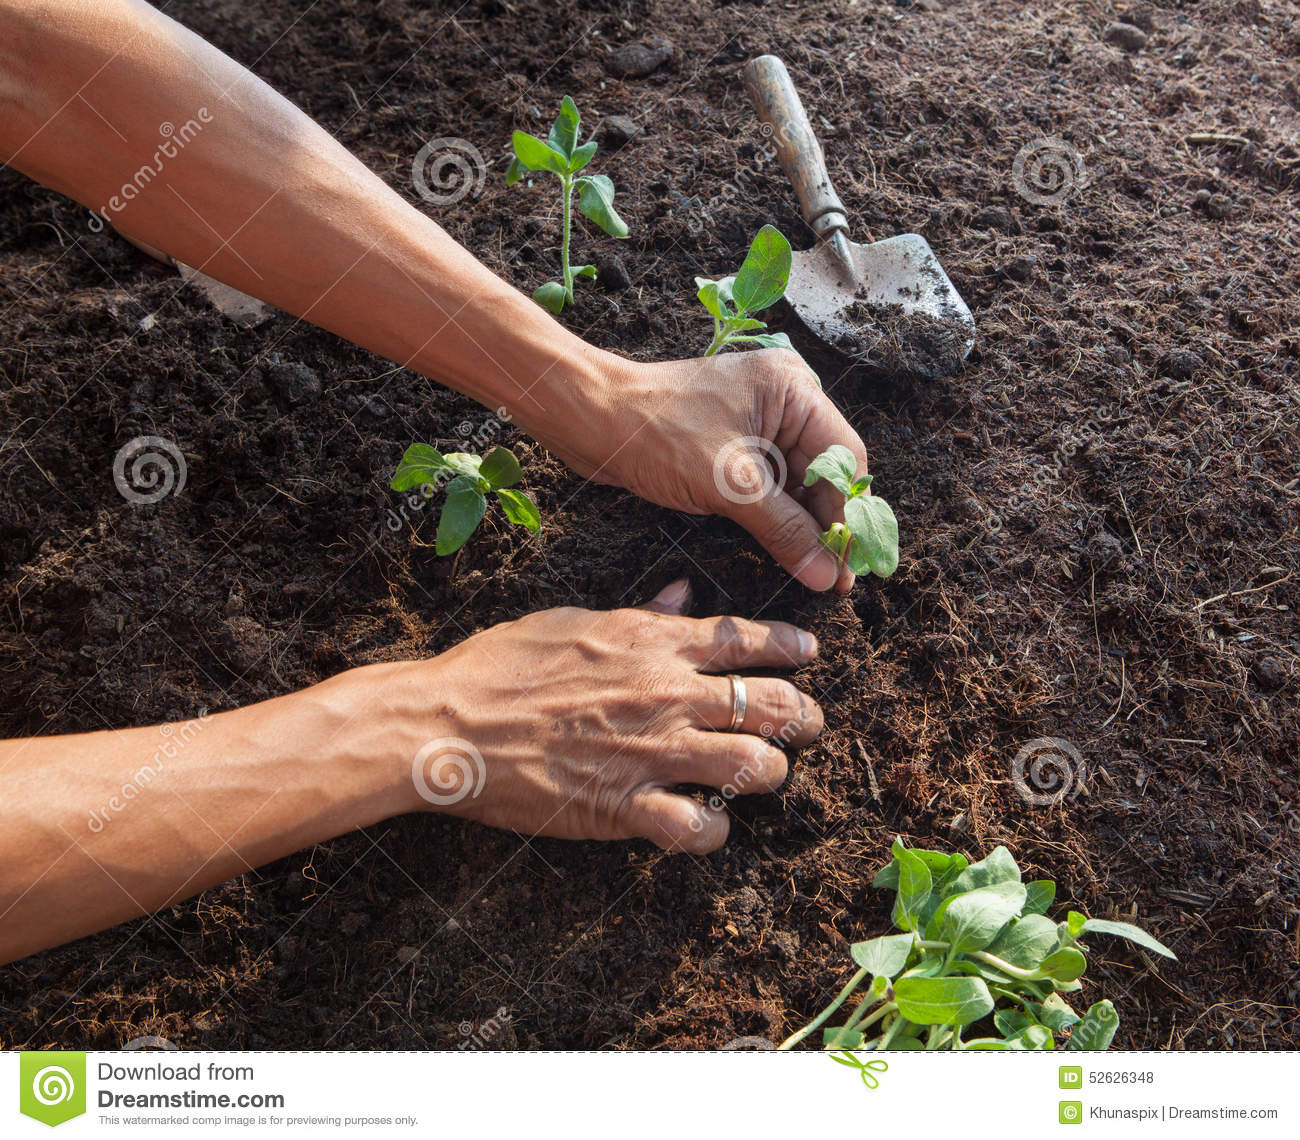 People planting young tree on dirt soil with gardening for Gardening tools used in planting crossword clue